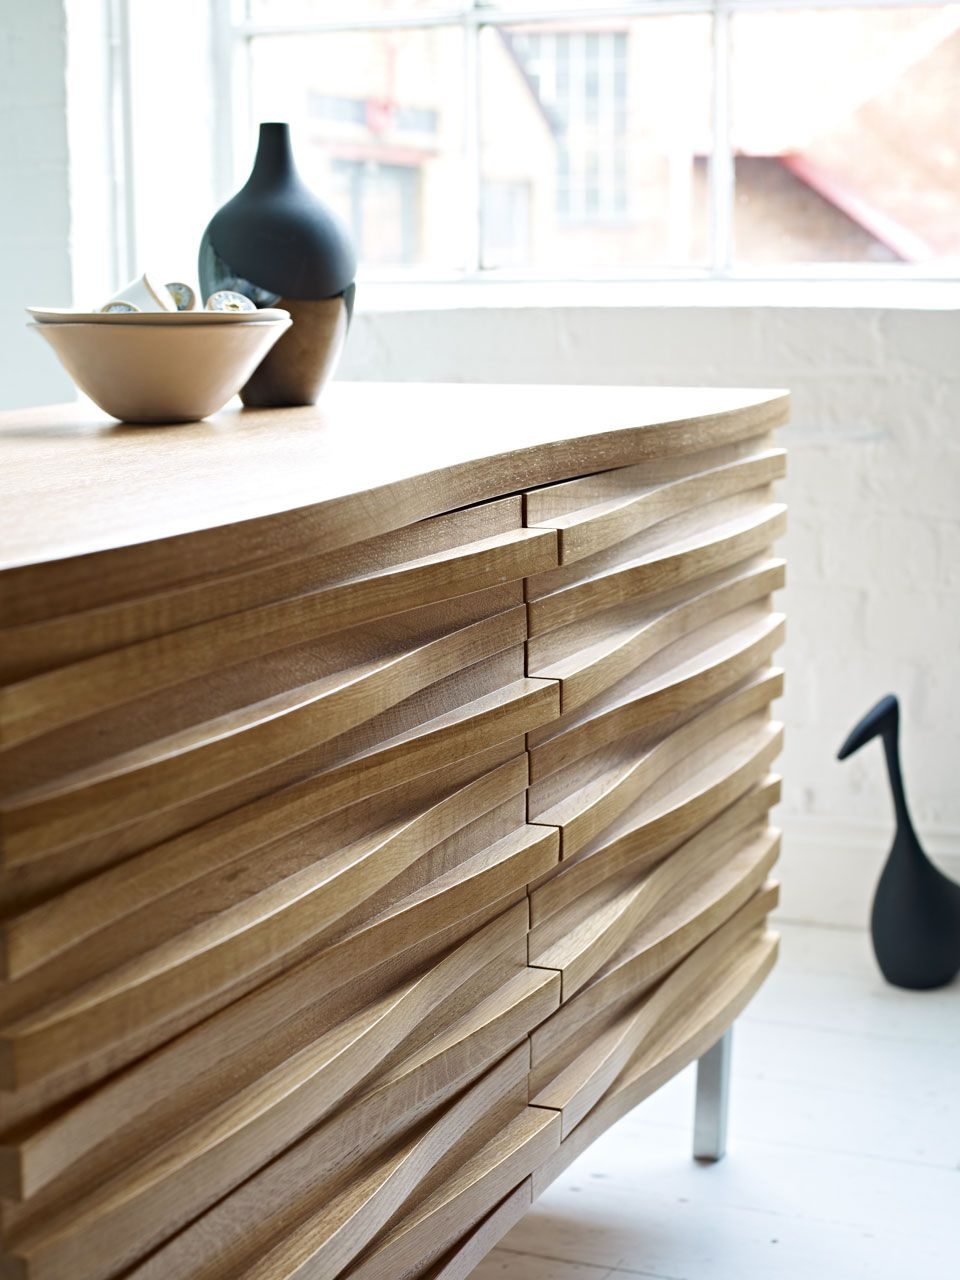 contentconran wave sideboard | design de moveis, design